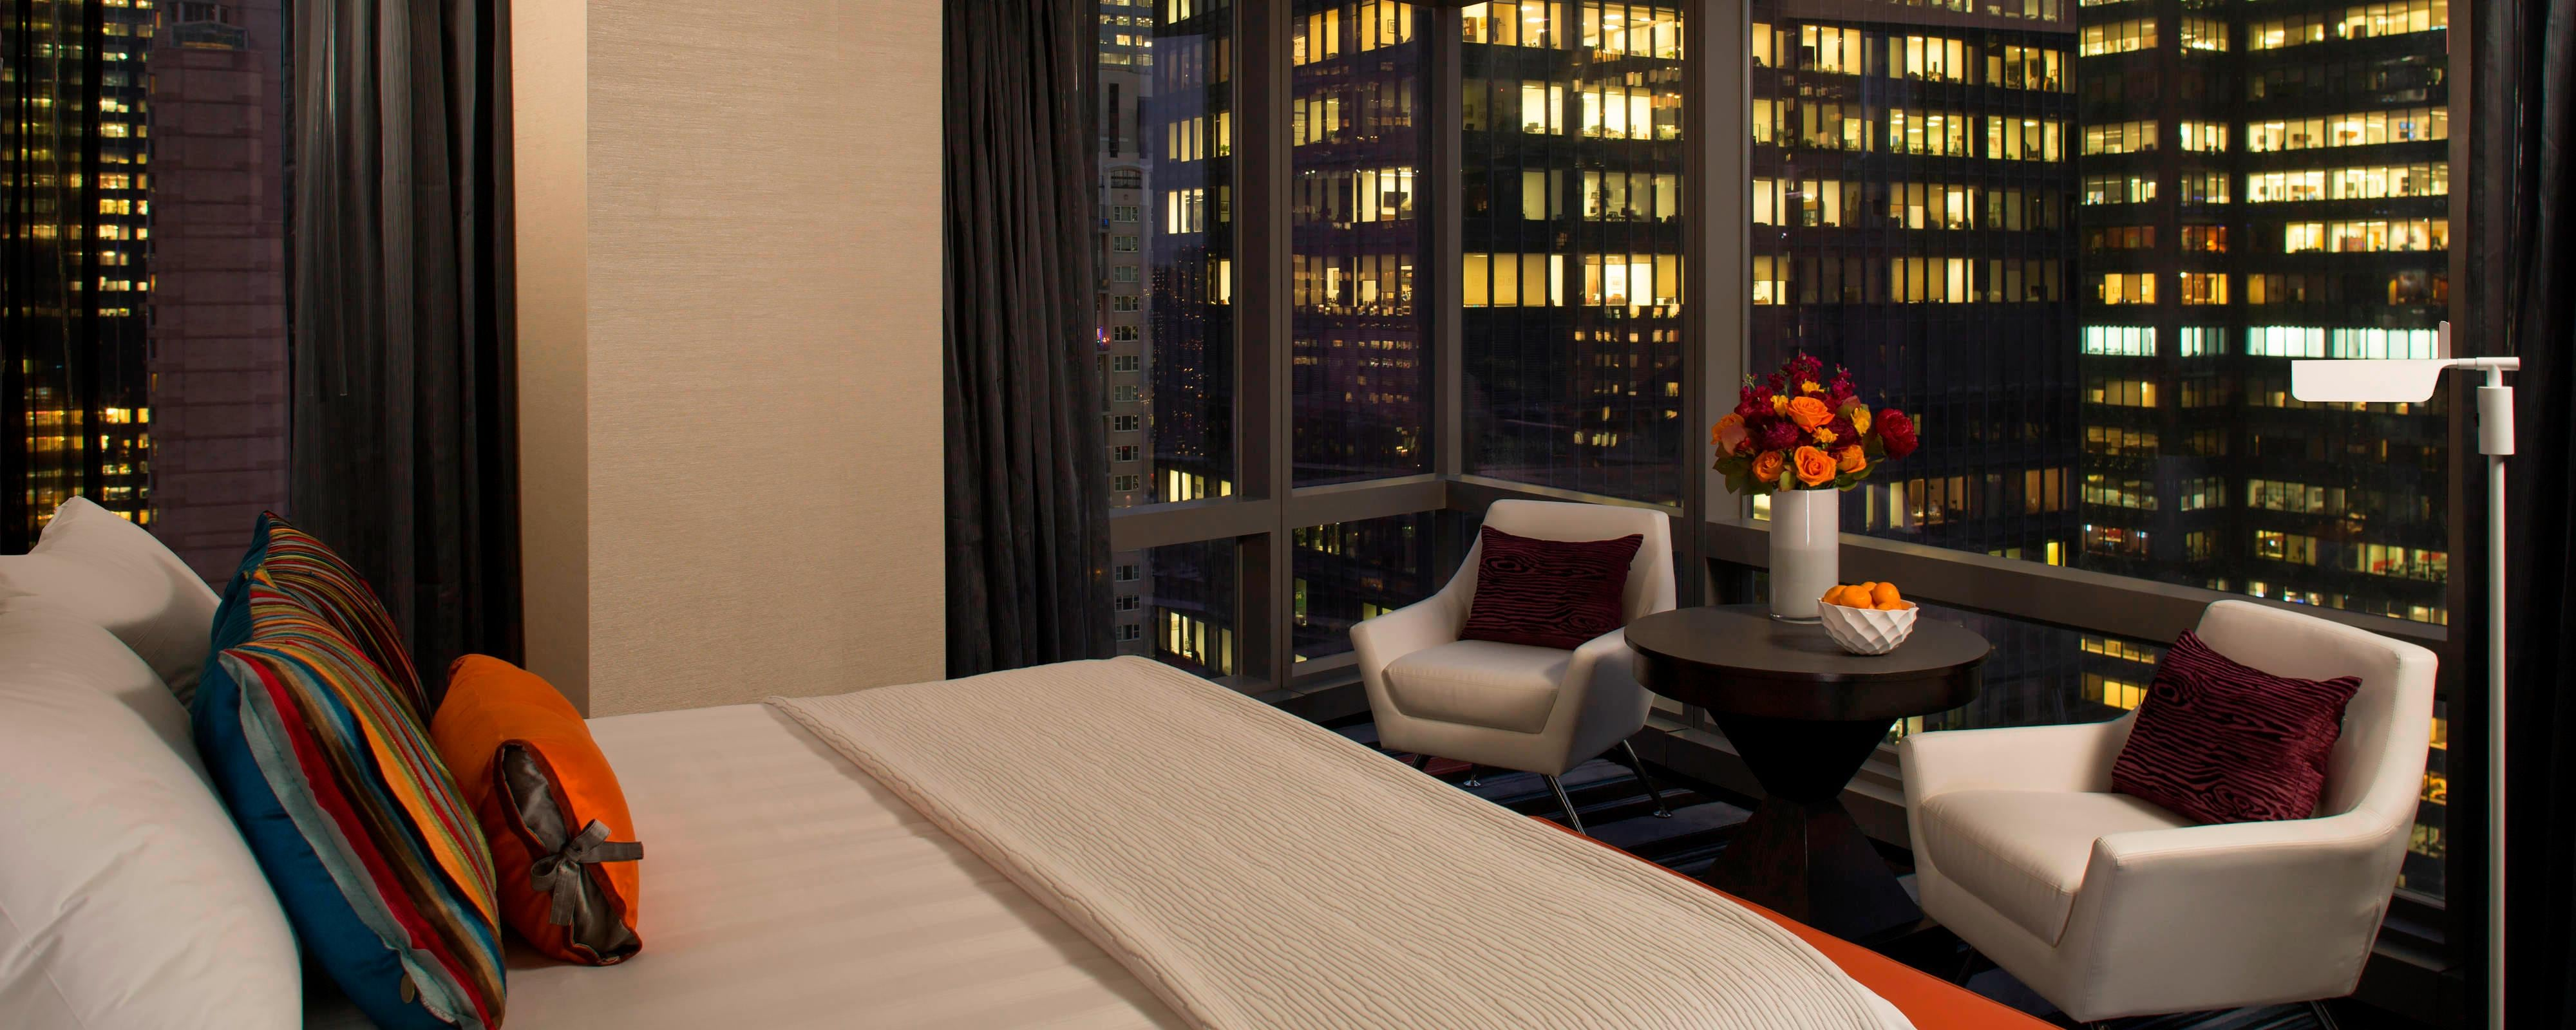 Camere dell'hotel con vista su Manhattan